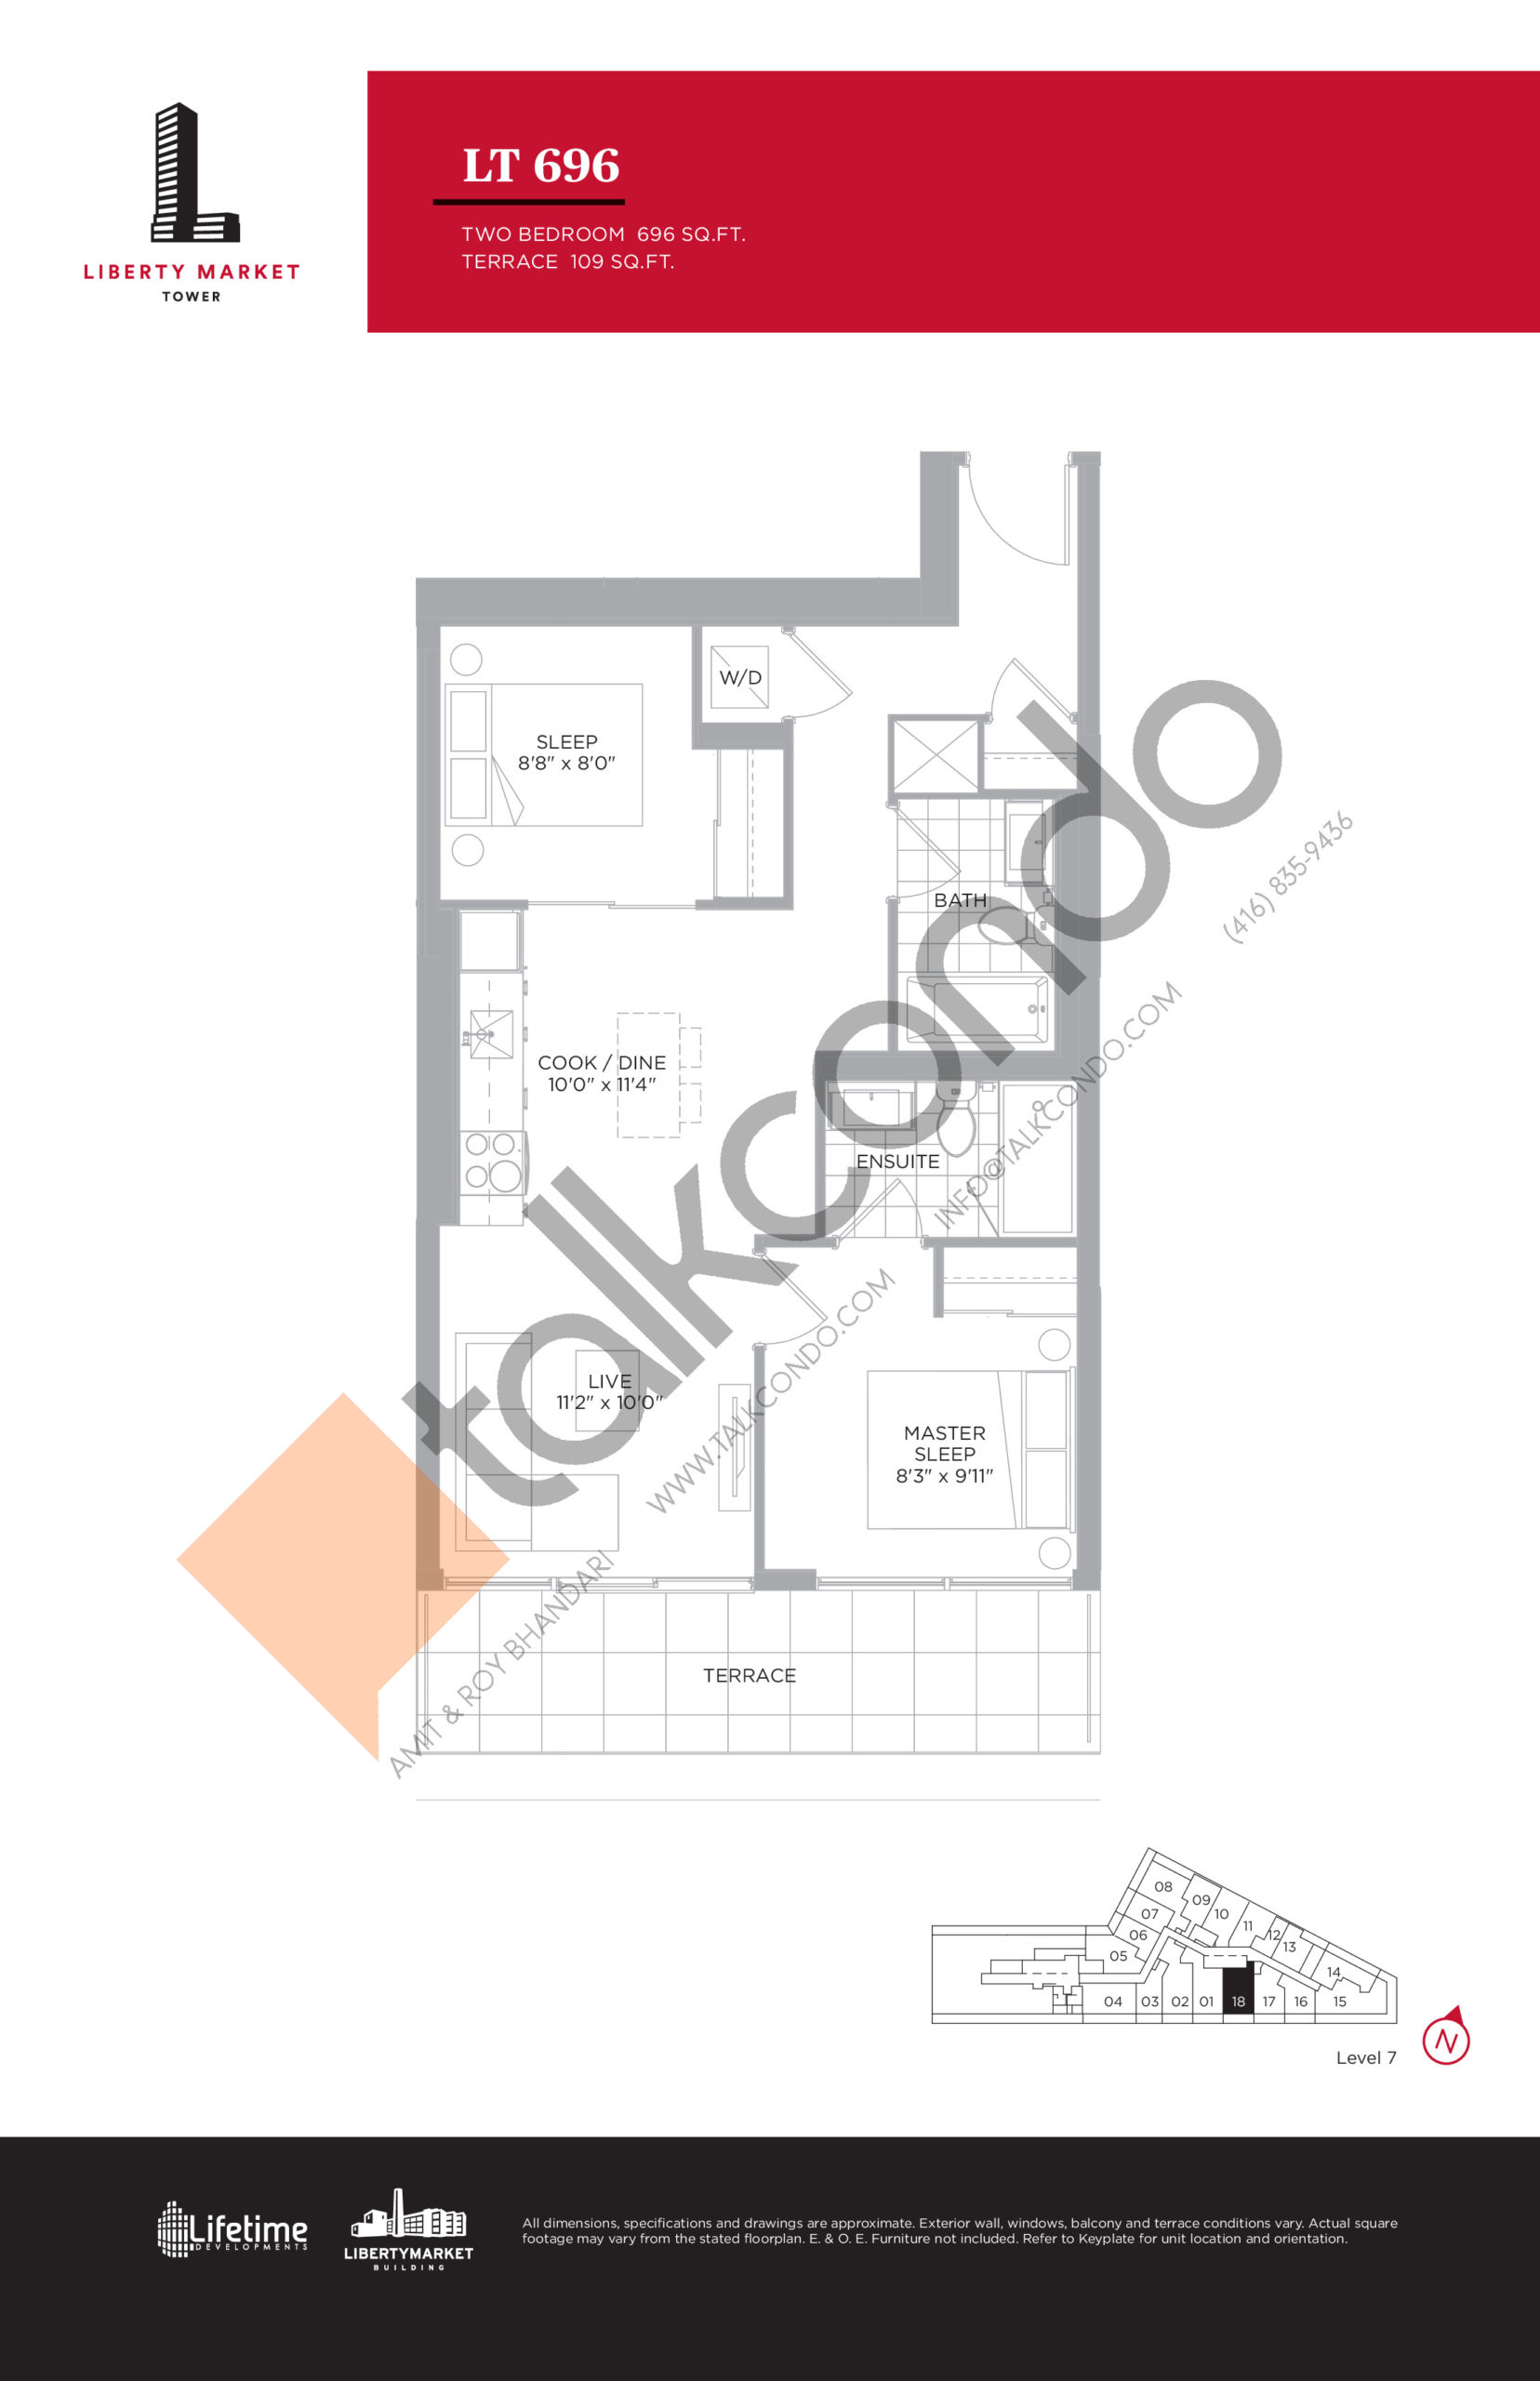 LT 696 - Terrace Collection Floor Plan at Liberty Market Tower Condos - 696 sq.ft